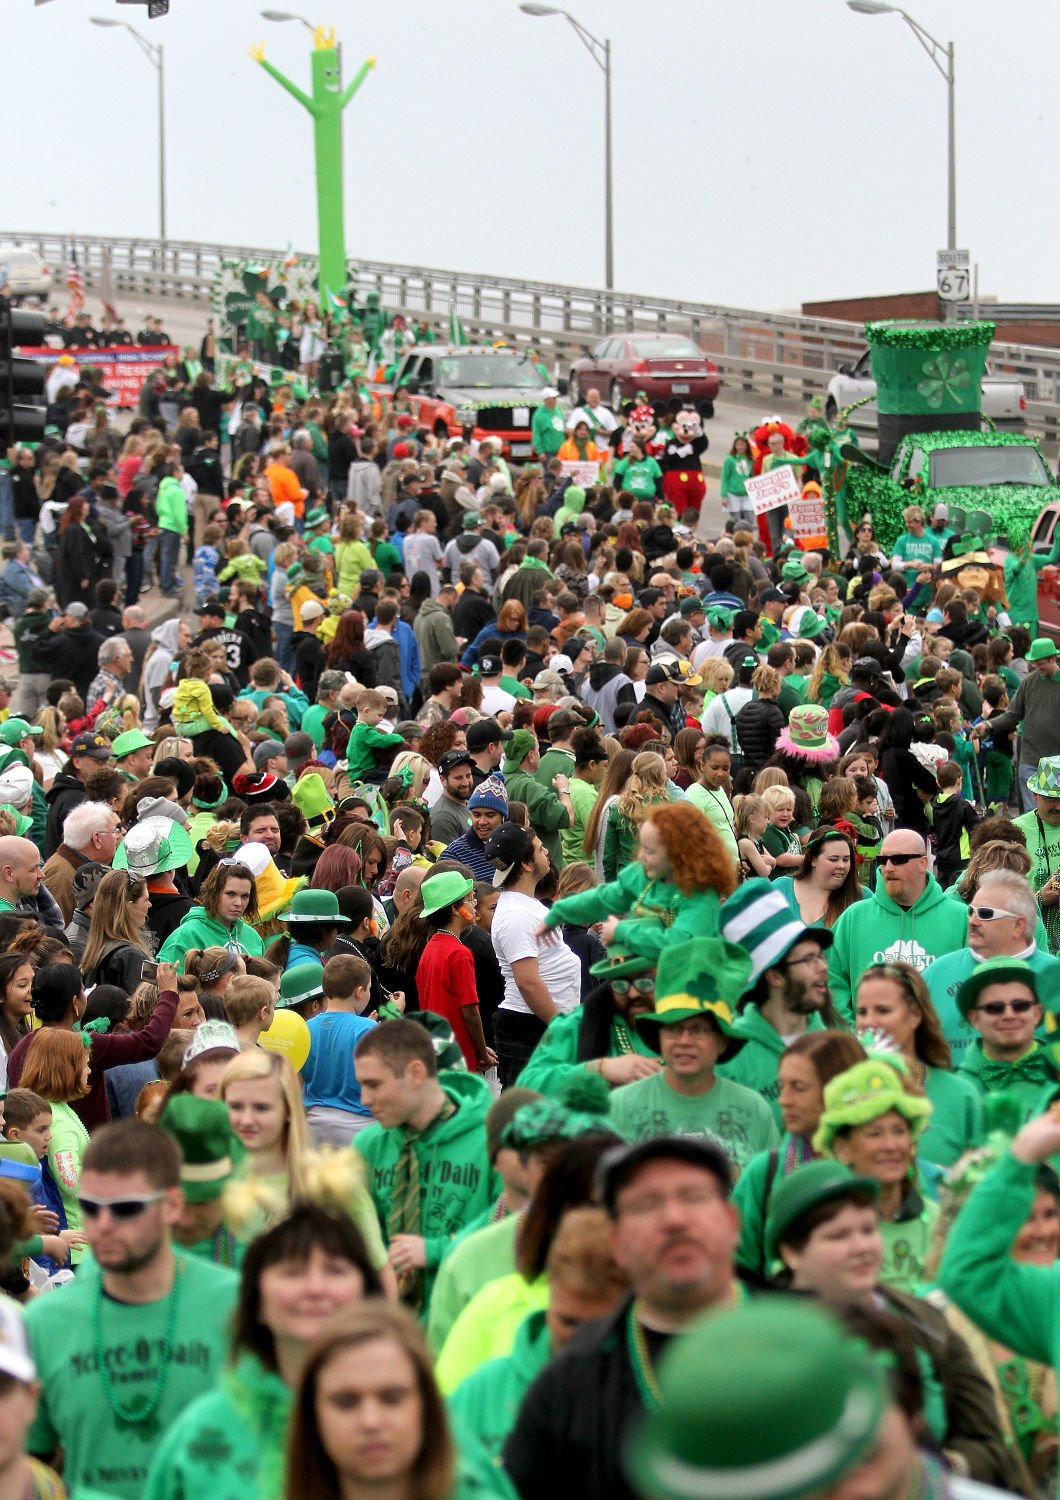 1. Parade for St. Patrick's Day